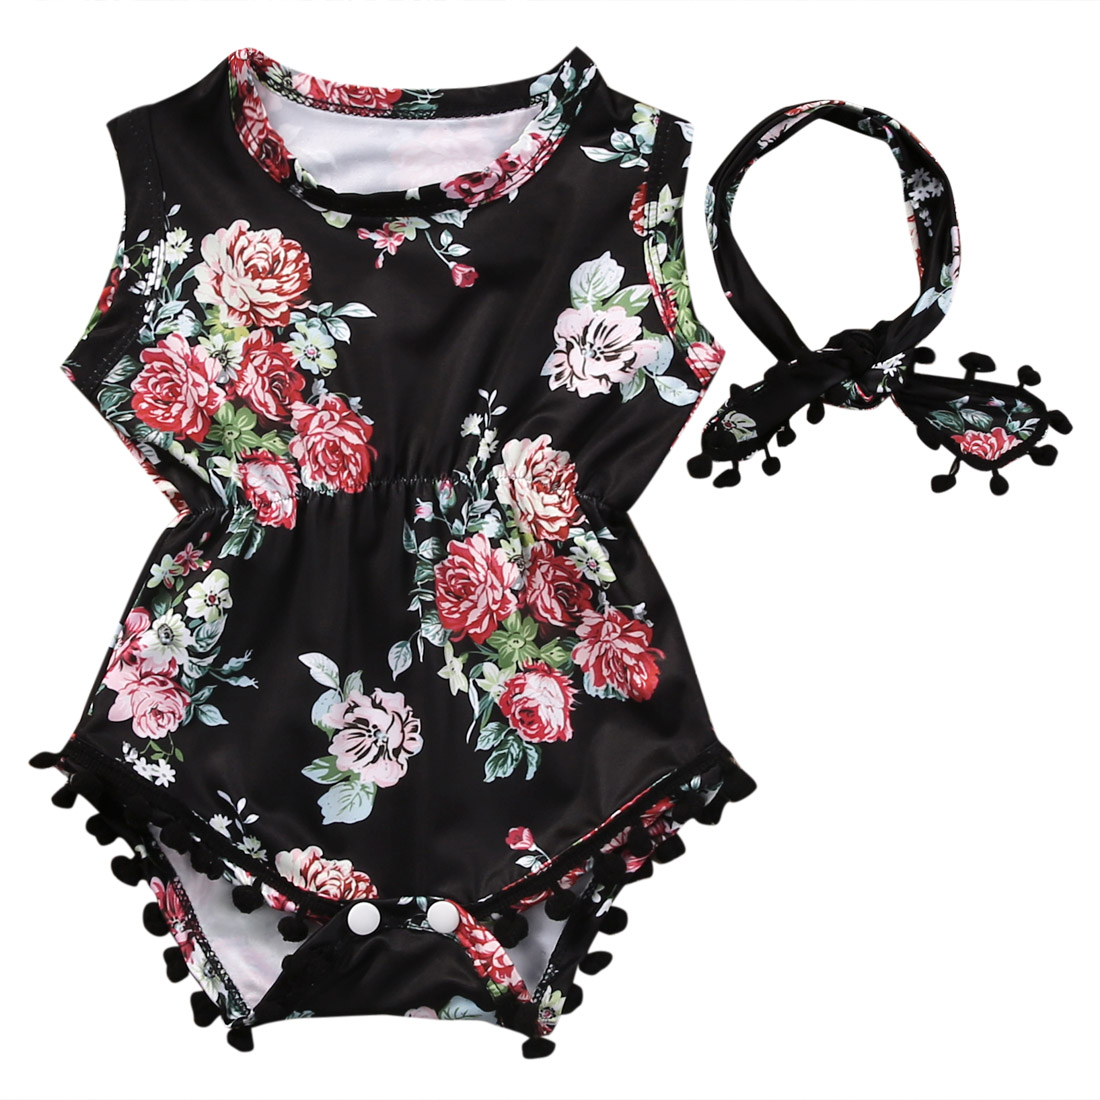 Newborn VIntage Purple Flowers Floral Baby Girls Clothes Clothing   Romper   Sunsuit One-pieces With Headband Outfits Set Wholesale